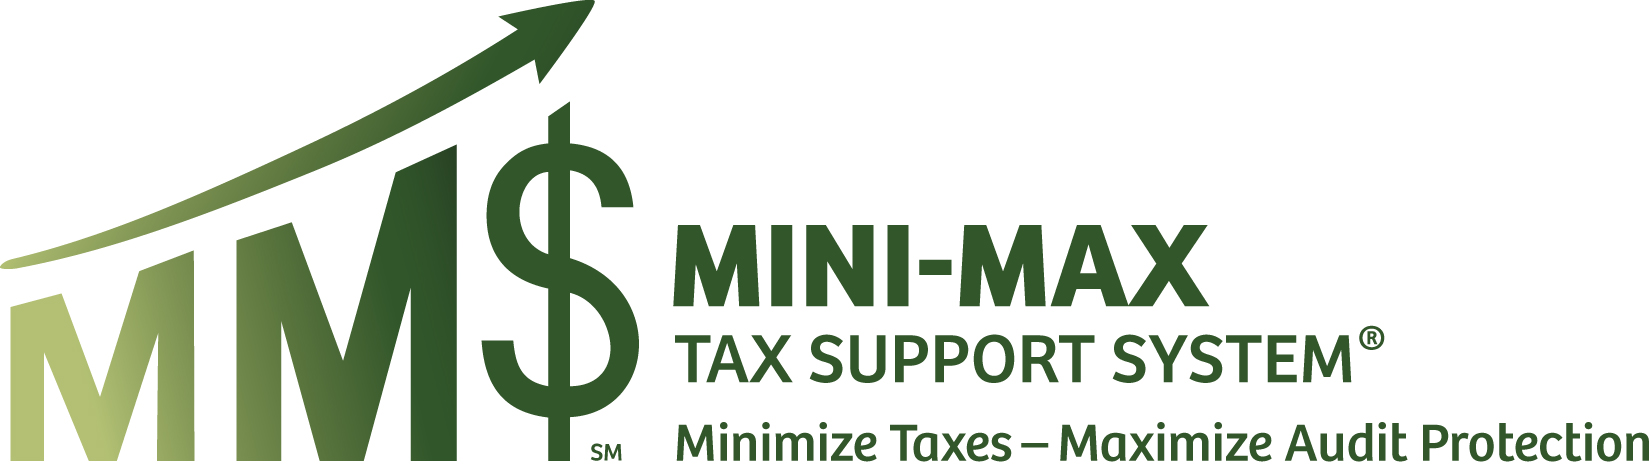 Mini-Max Tax Support System